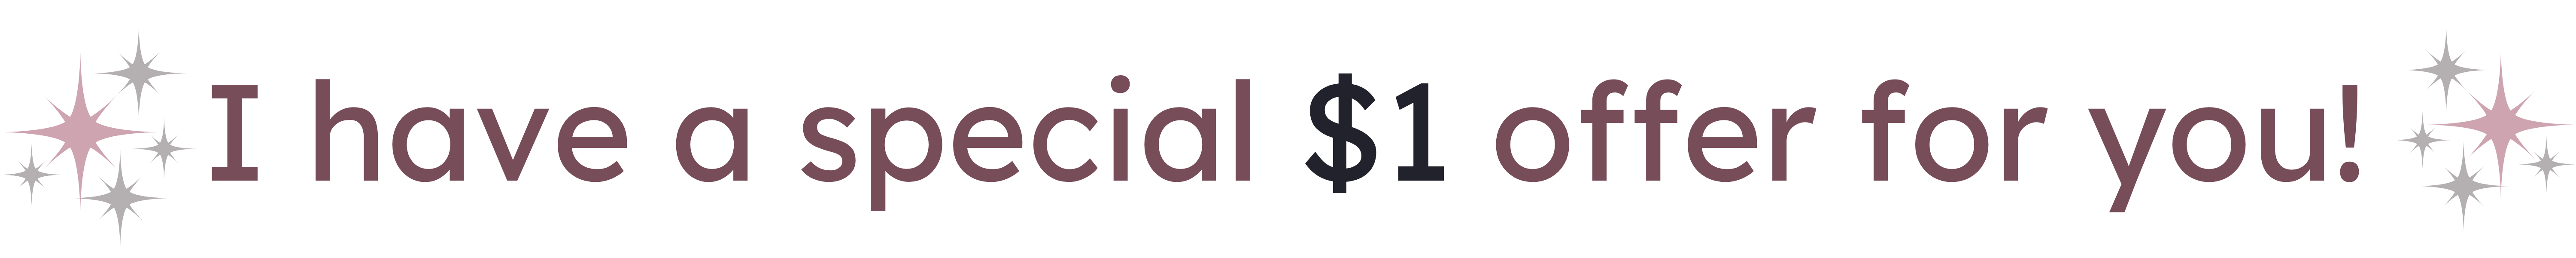 I have a special $1 offer for you! (2)